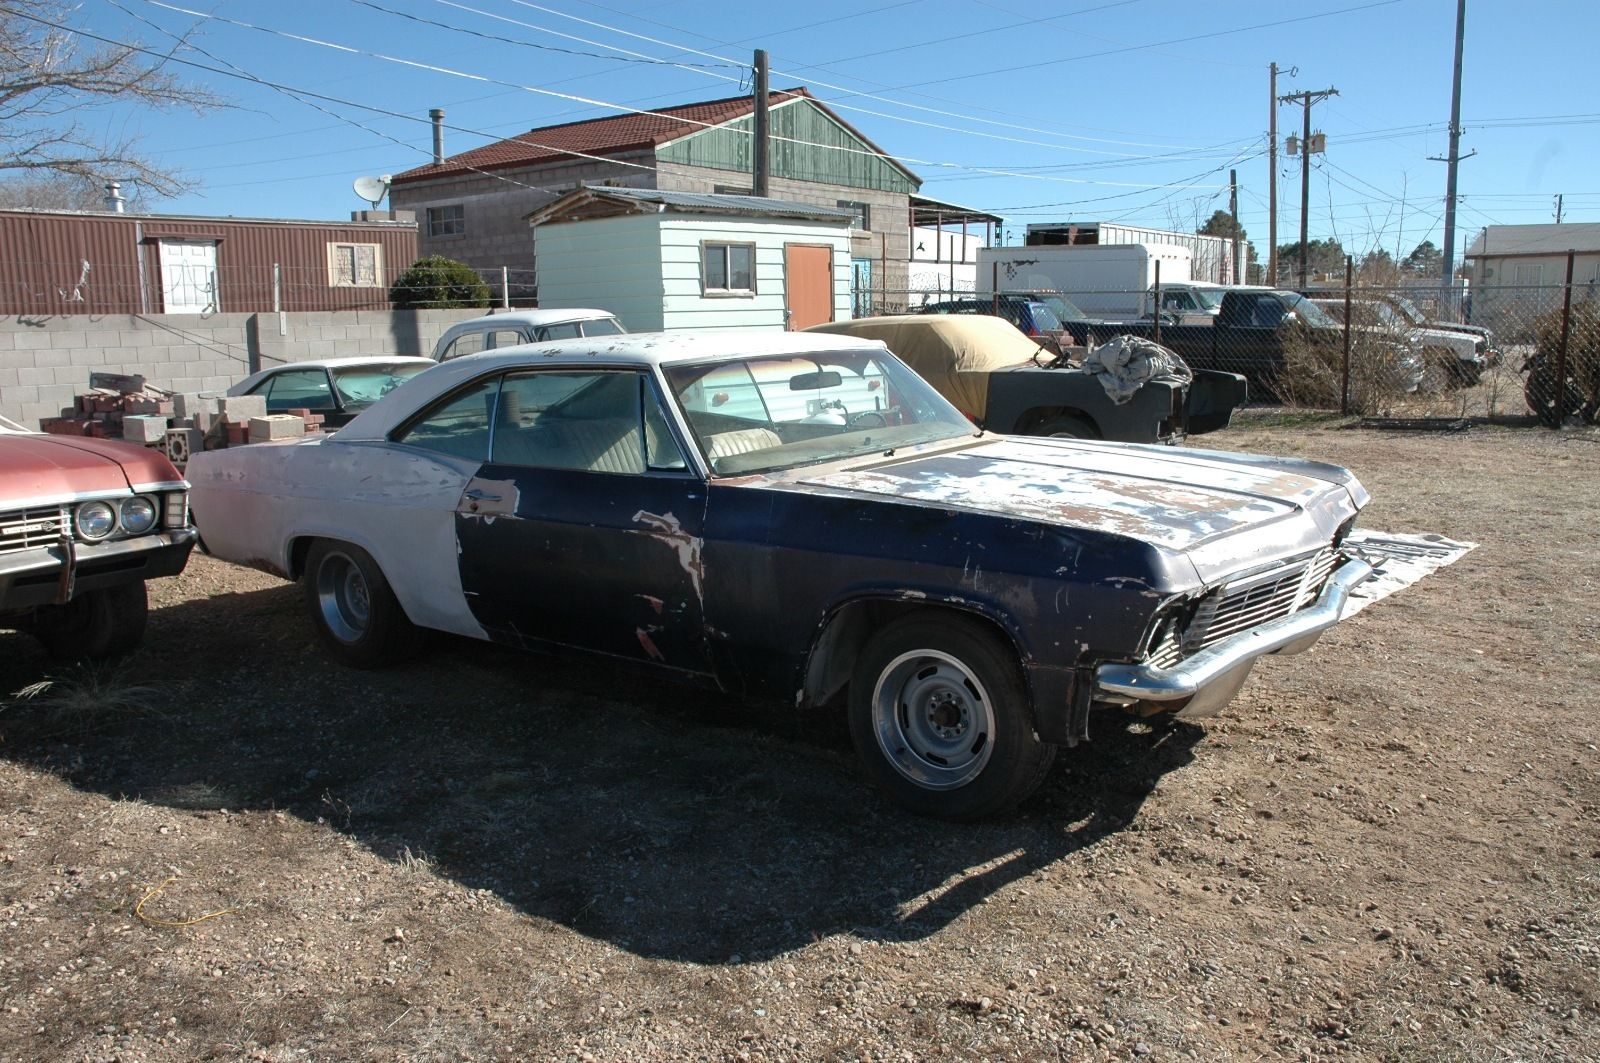 1965 chevrolet impala ss project car for sale for Motor cars for sale